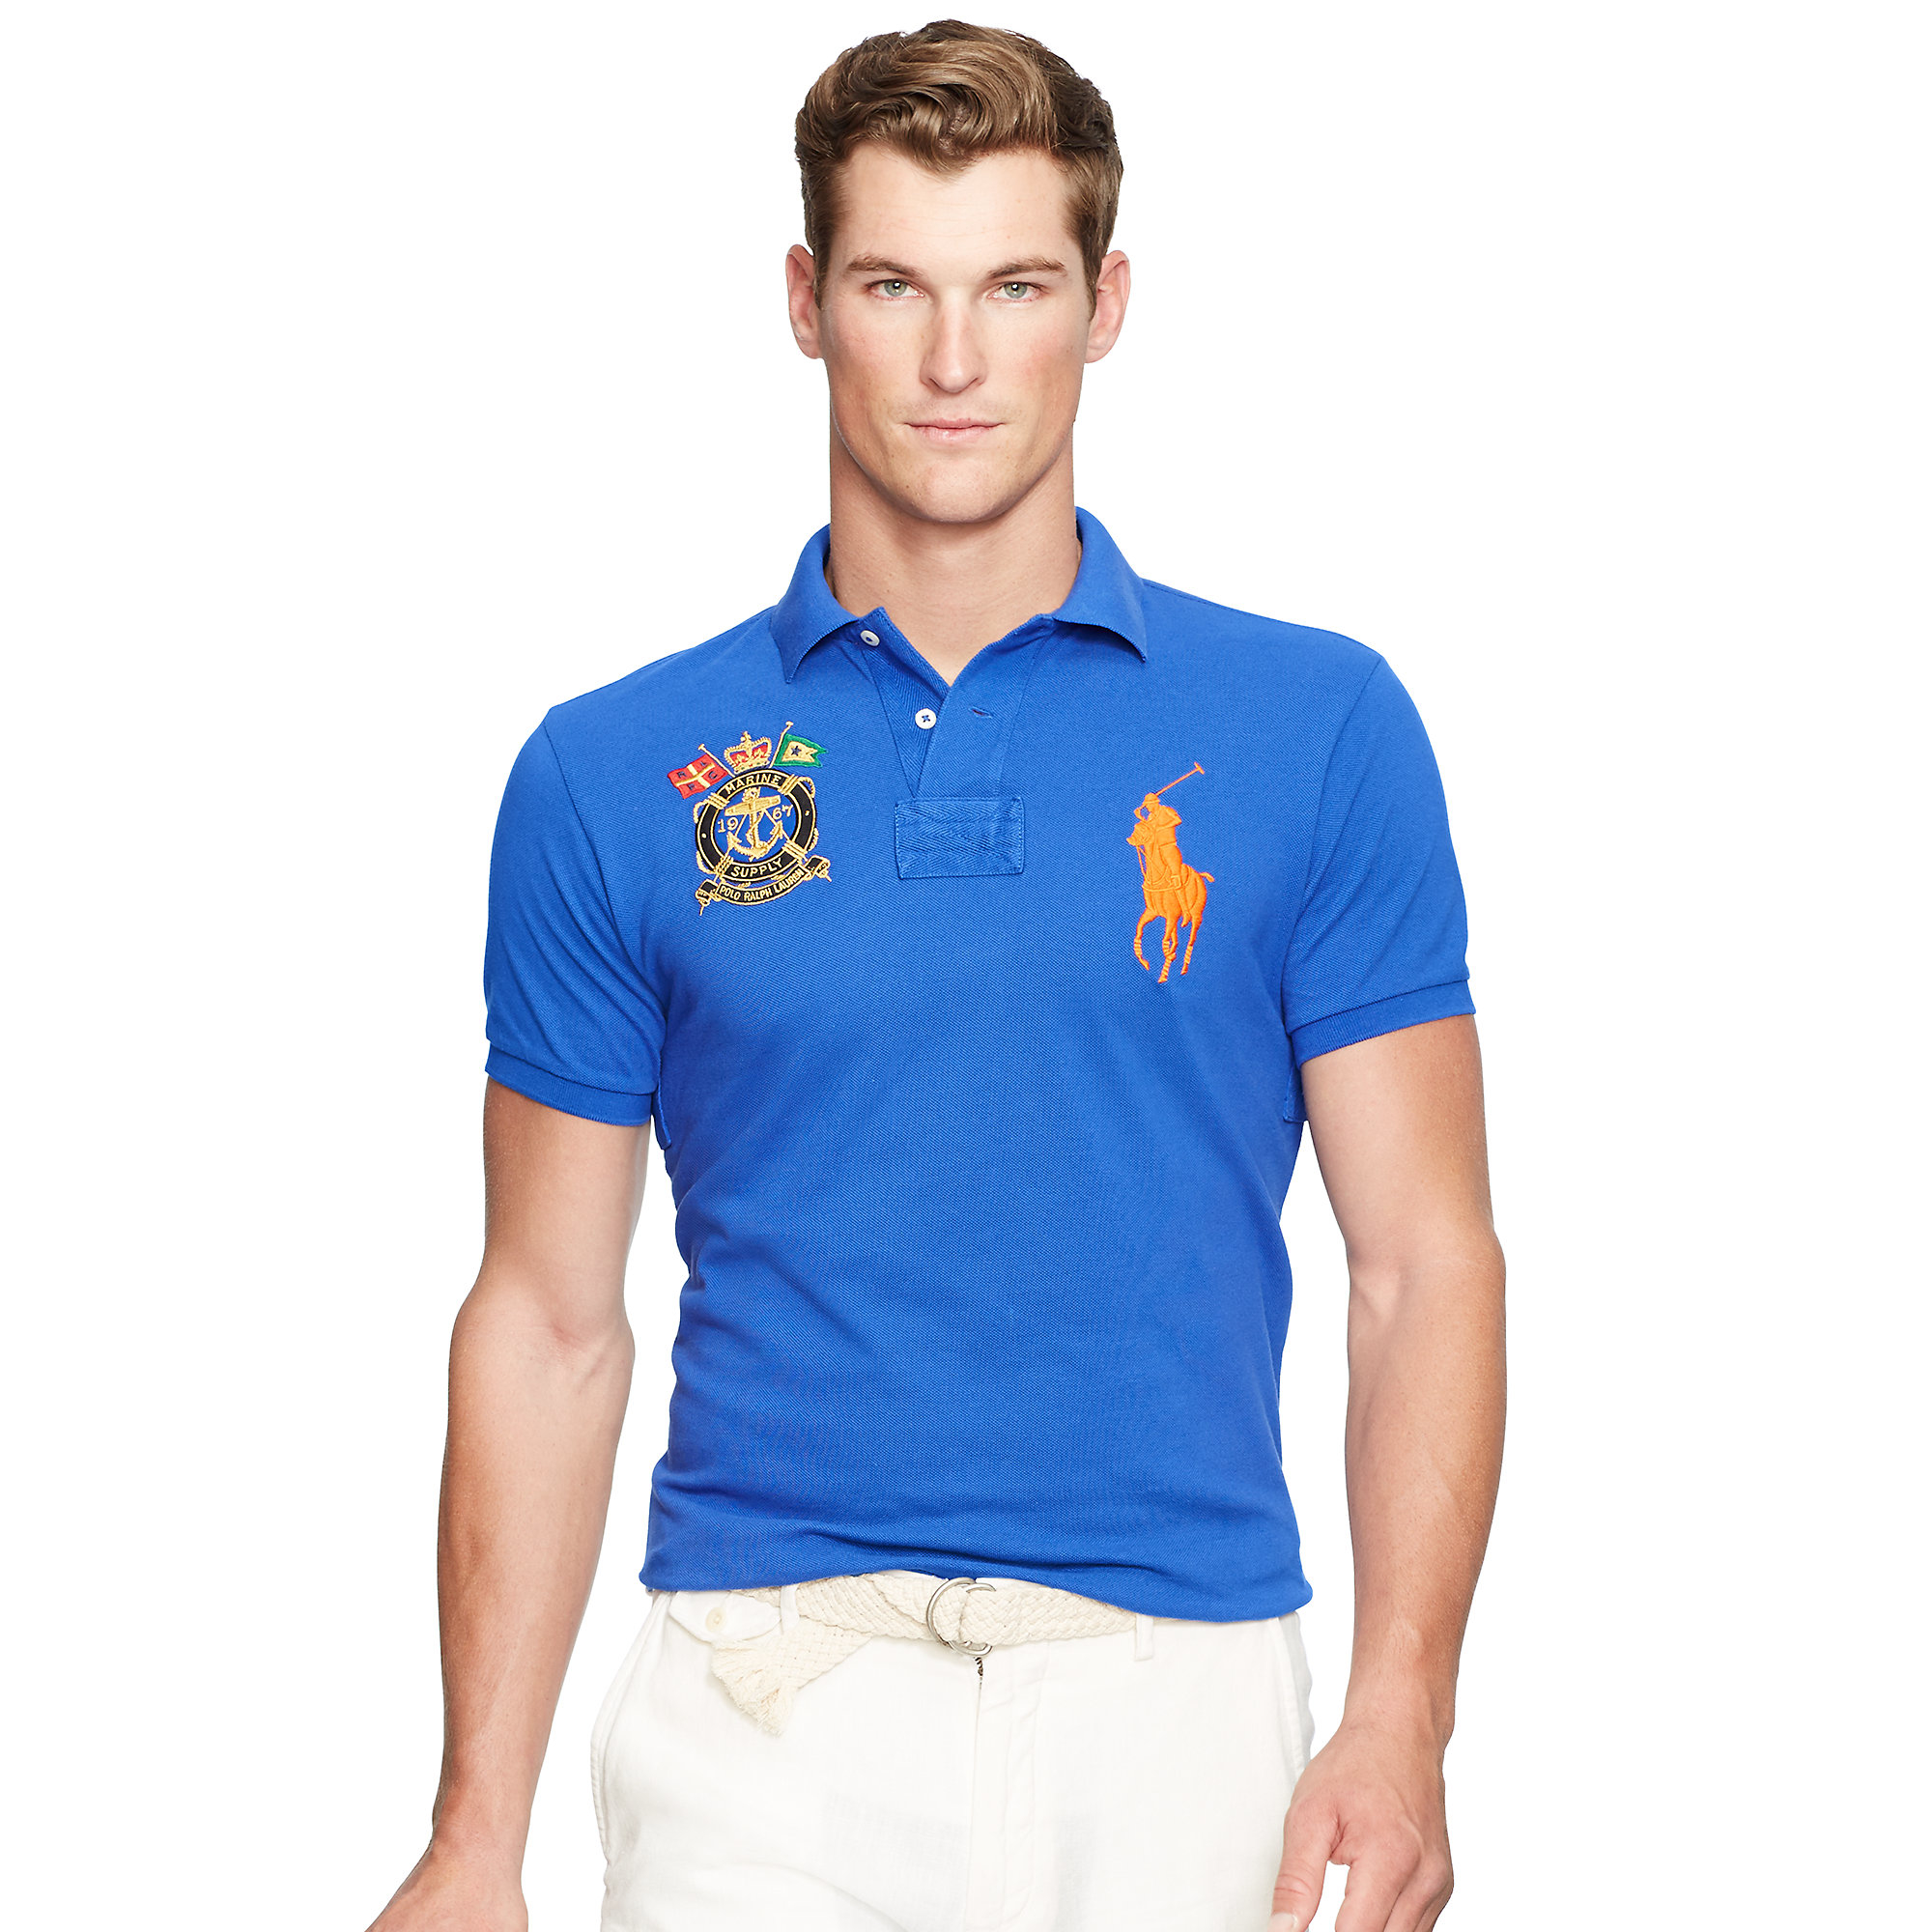 4a1fdf1af8 Ralph Lauren Custom Fit Polo Shirt White